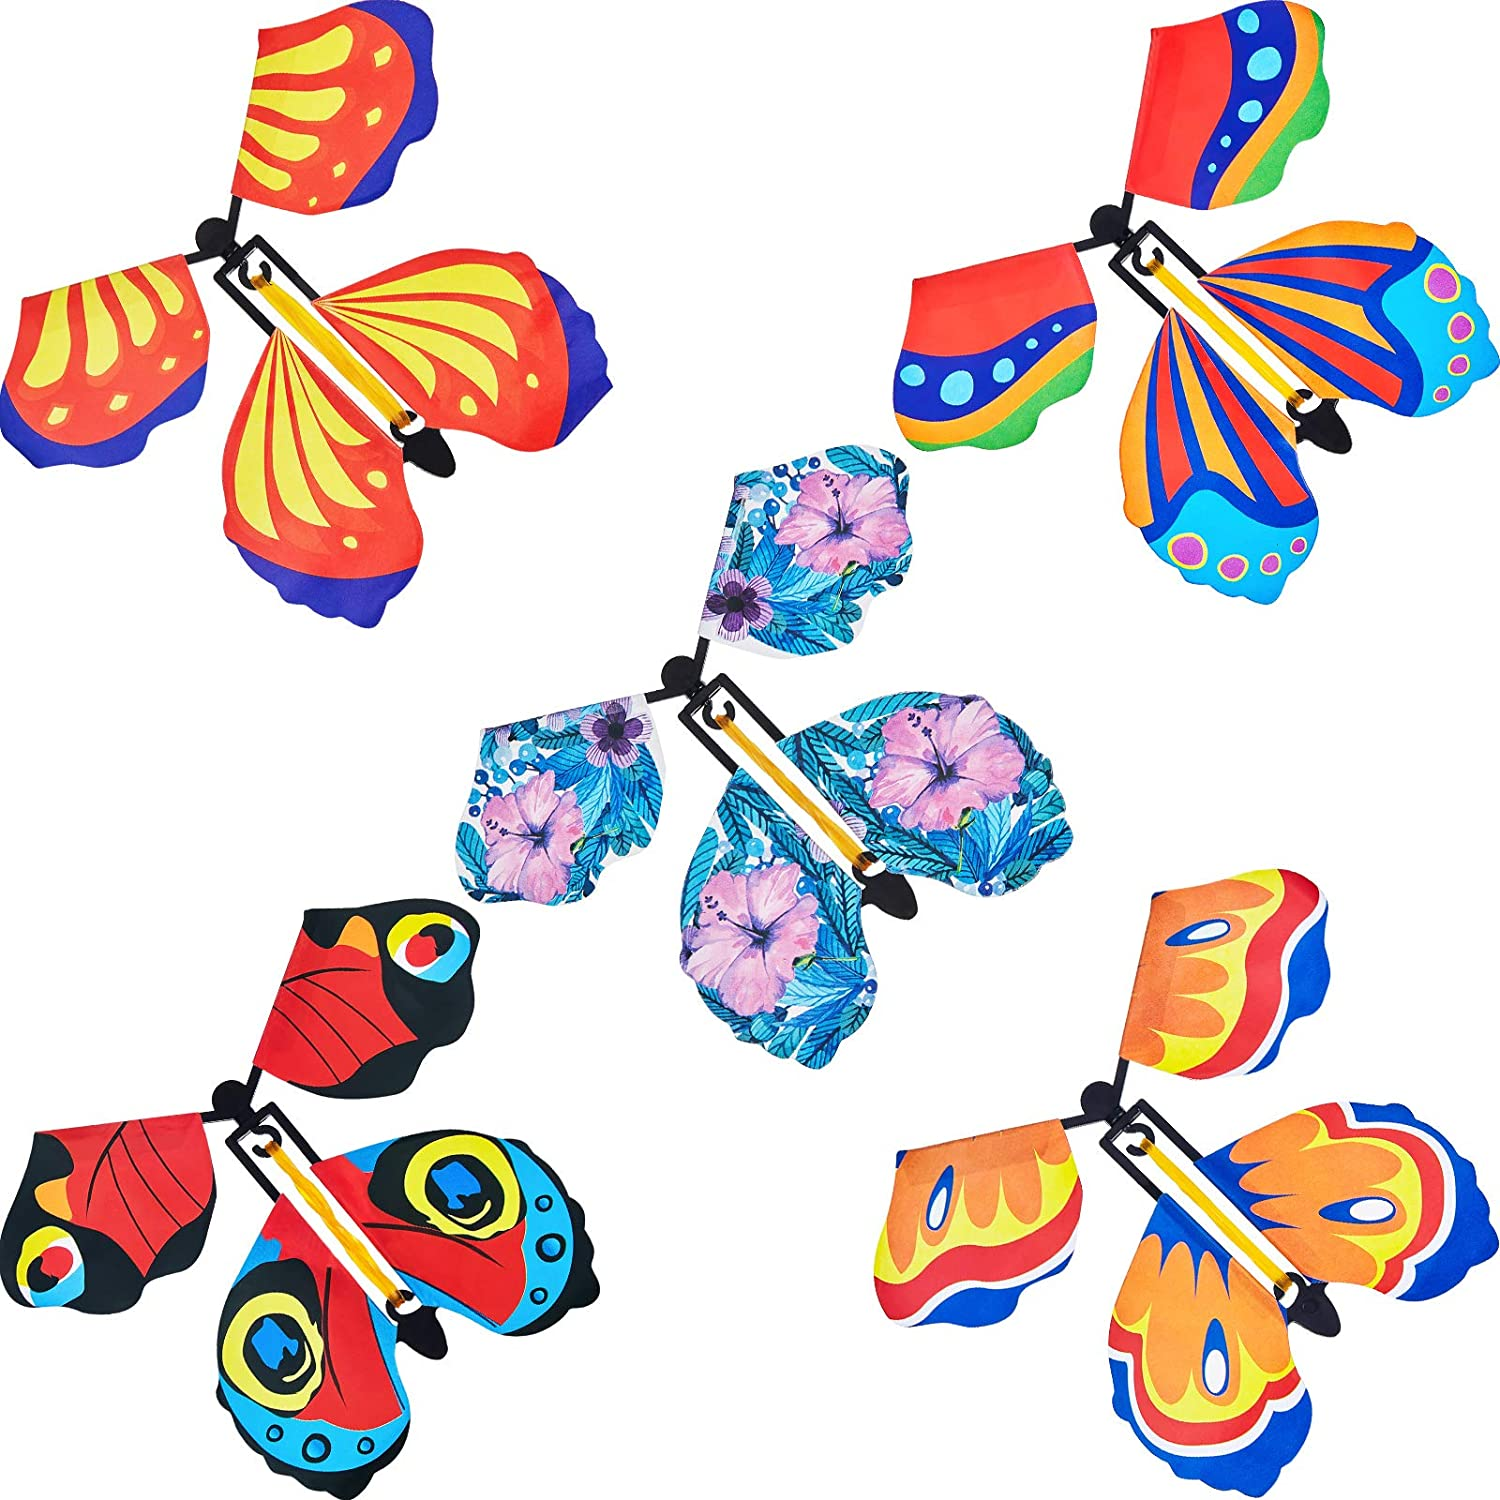 B bangcool Magic Flying Butterflies Rubber Band Powered Funny Wind Up Butterfly Toy Fairy Toy